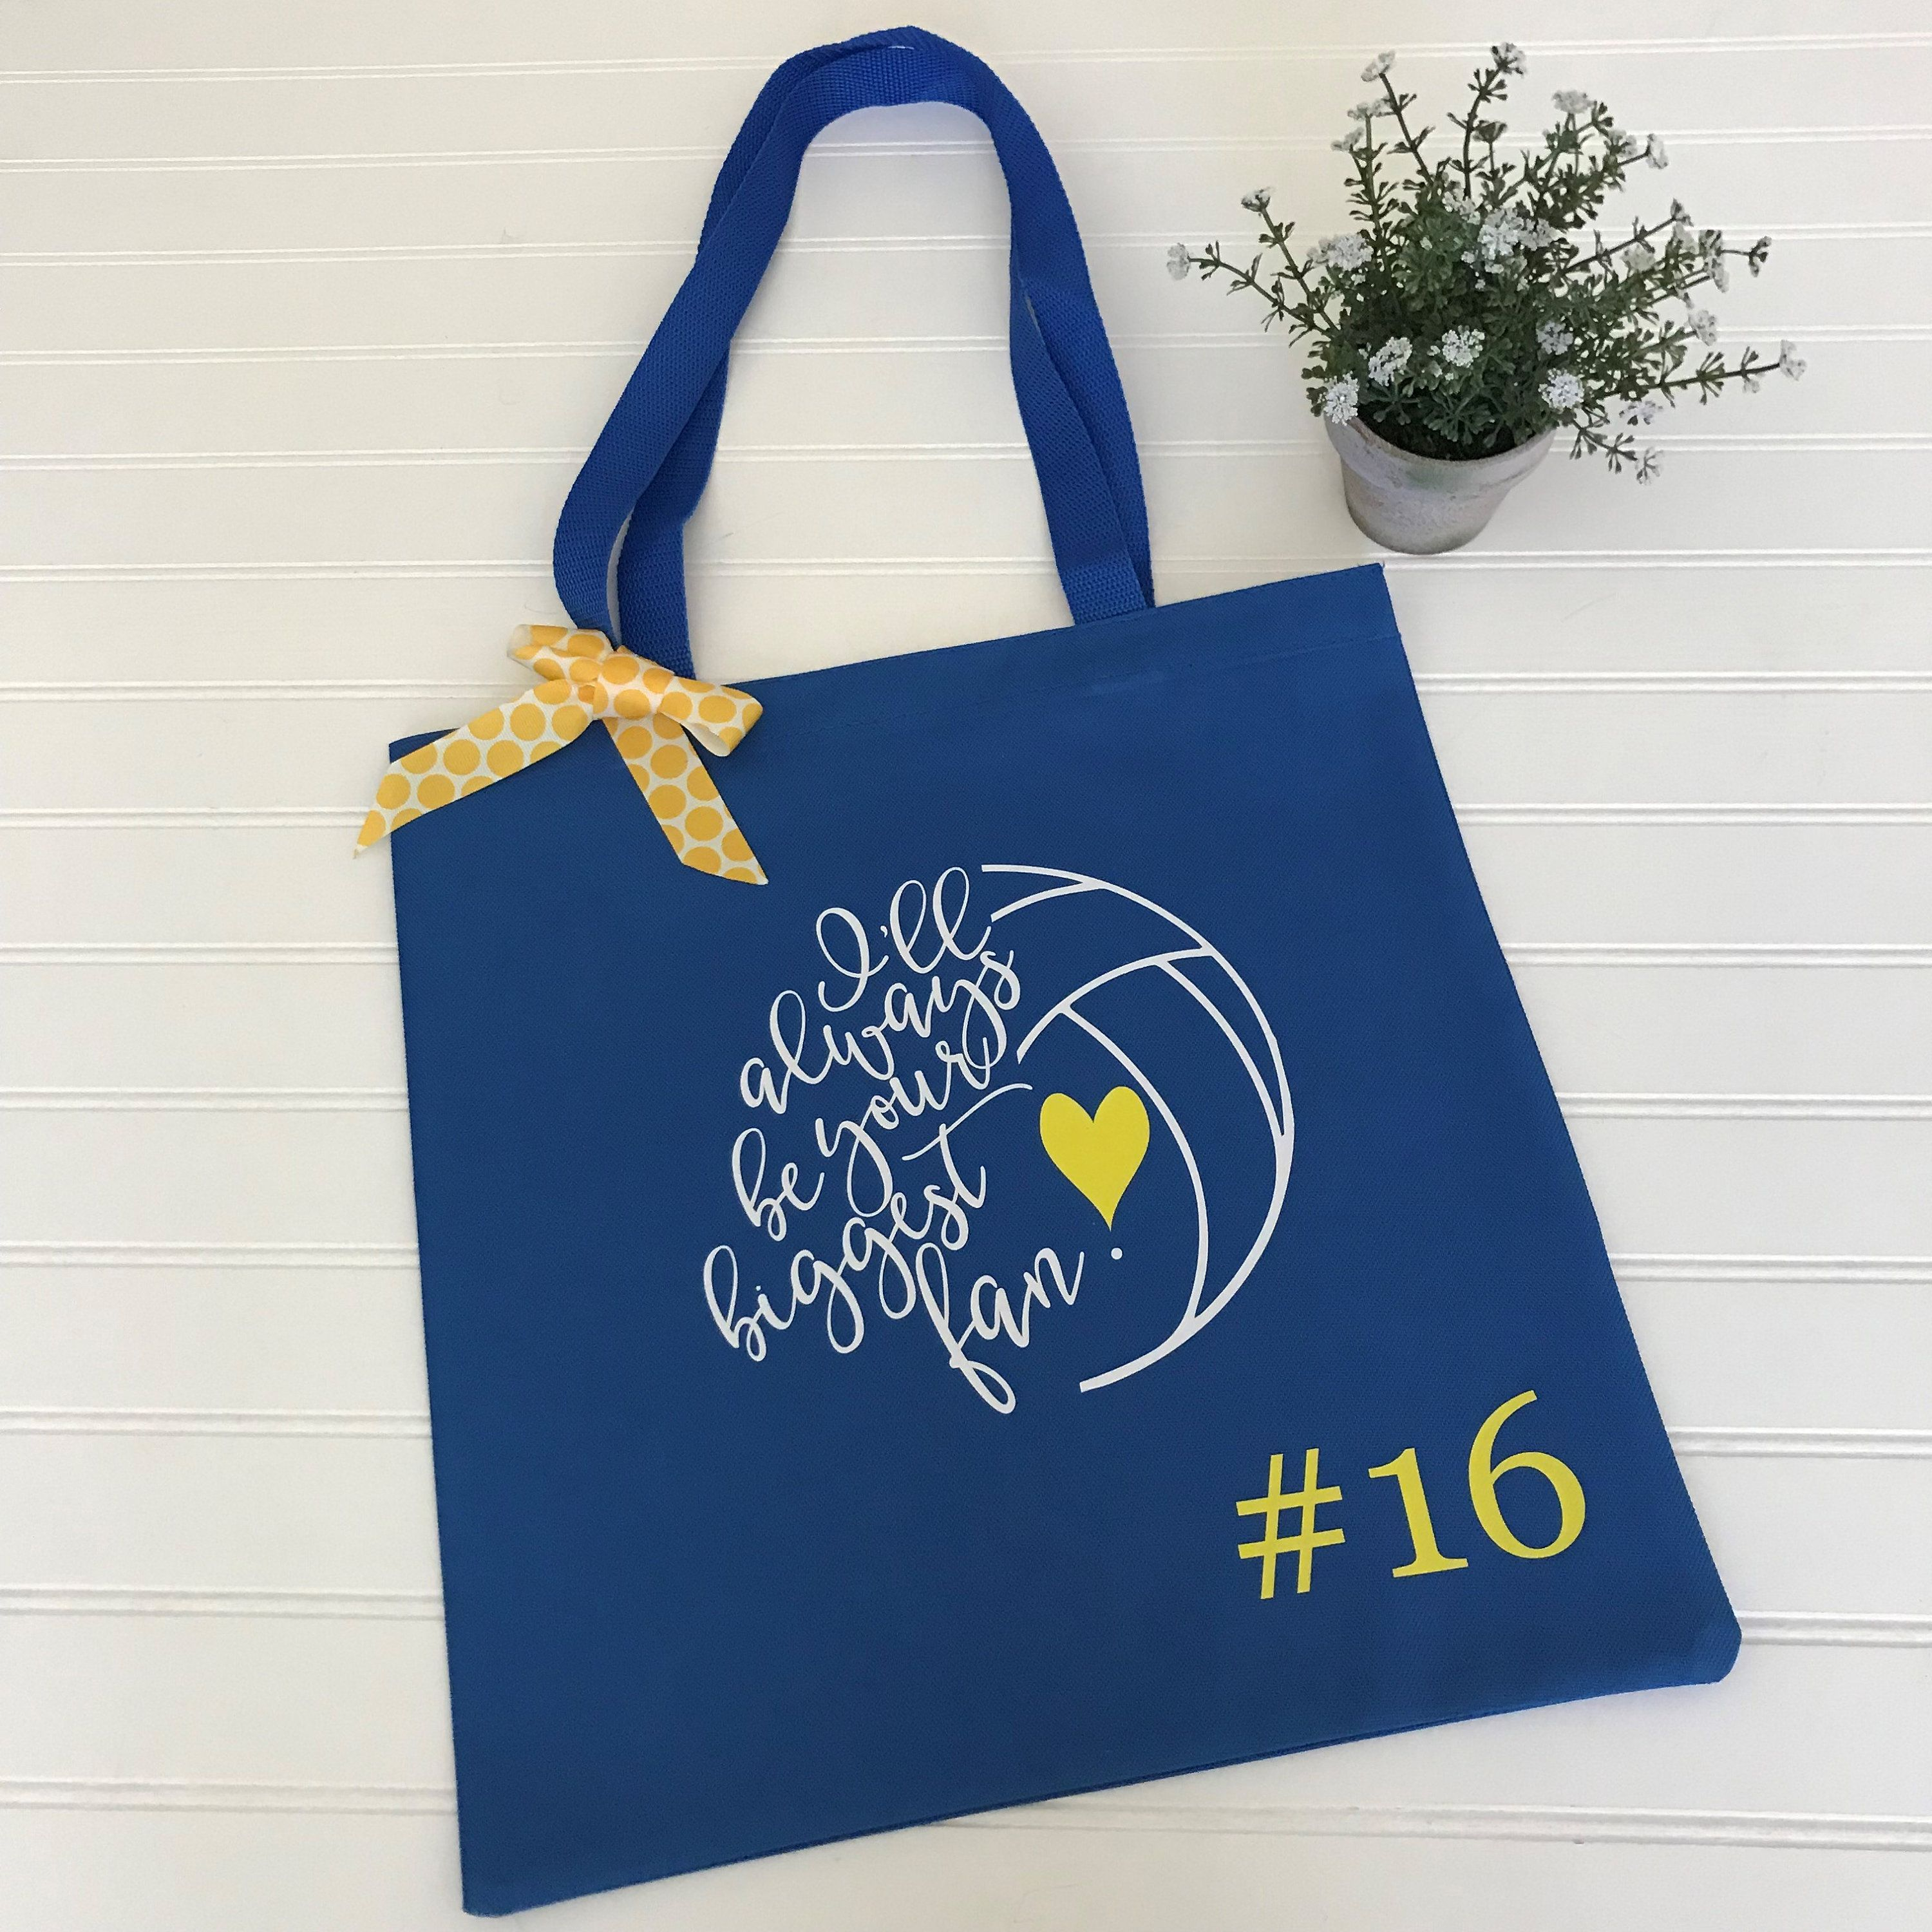 Volleyball Tote Bag Custom Volleyball Tote Personalized With Number Your Team Colors Volleyball Gift Volleyball Mom Tote Custom Team Bags Large Canvas Tote Bags Clear Tote Bags Best Tote Bags